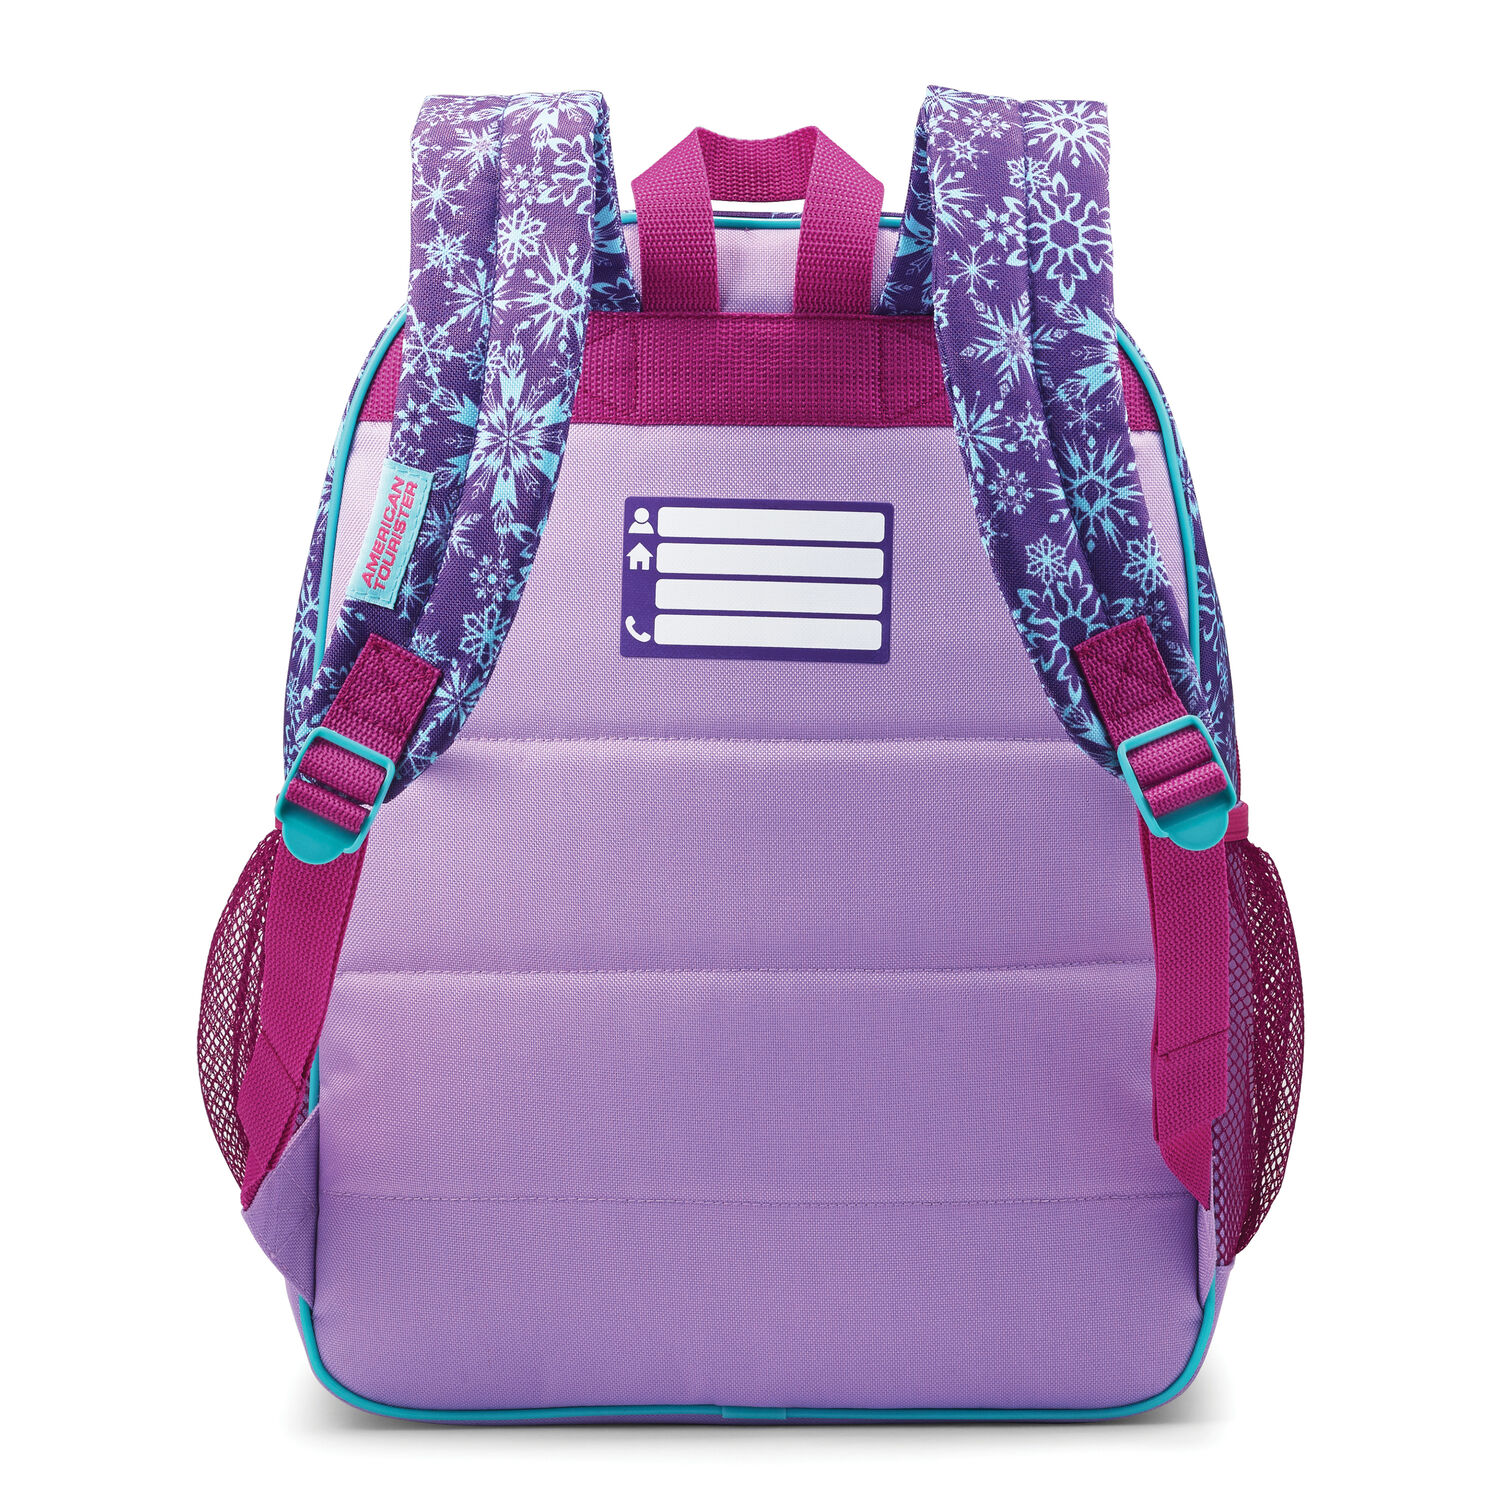 b6367d1bc839 American Tourister Disney Backpack in the color Frozen.